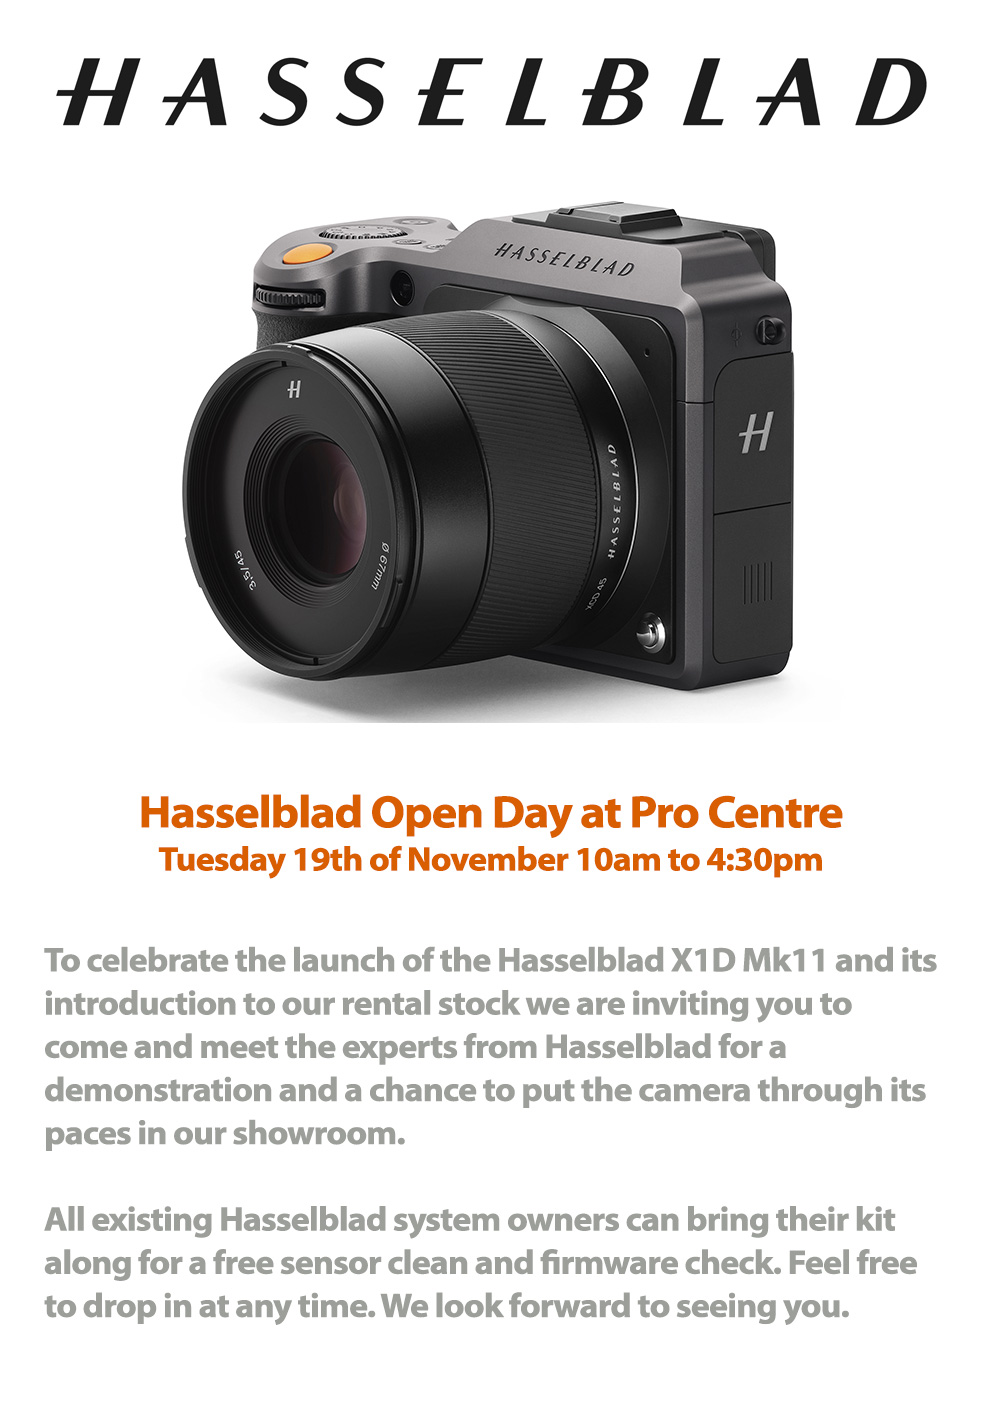 Hasselblad X1D at Pro Centre London